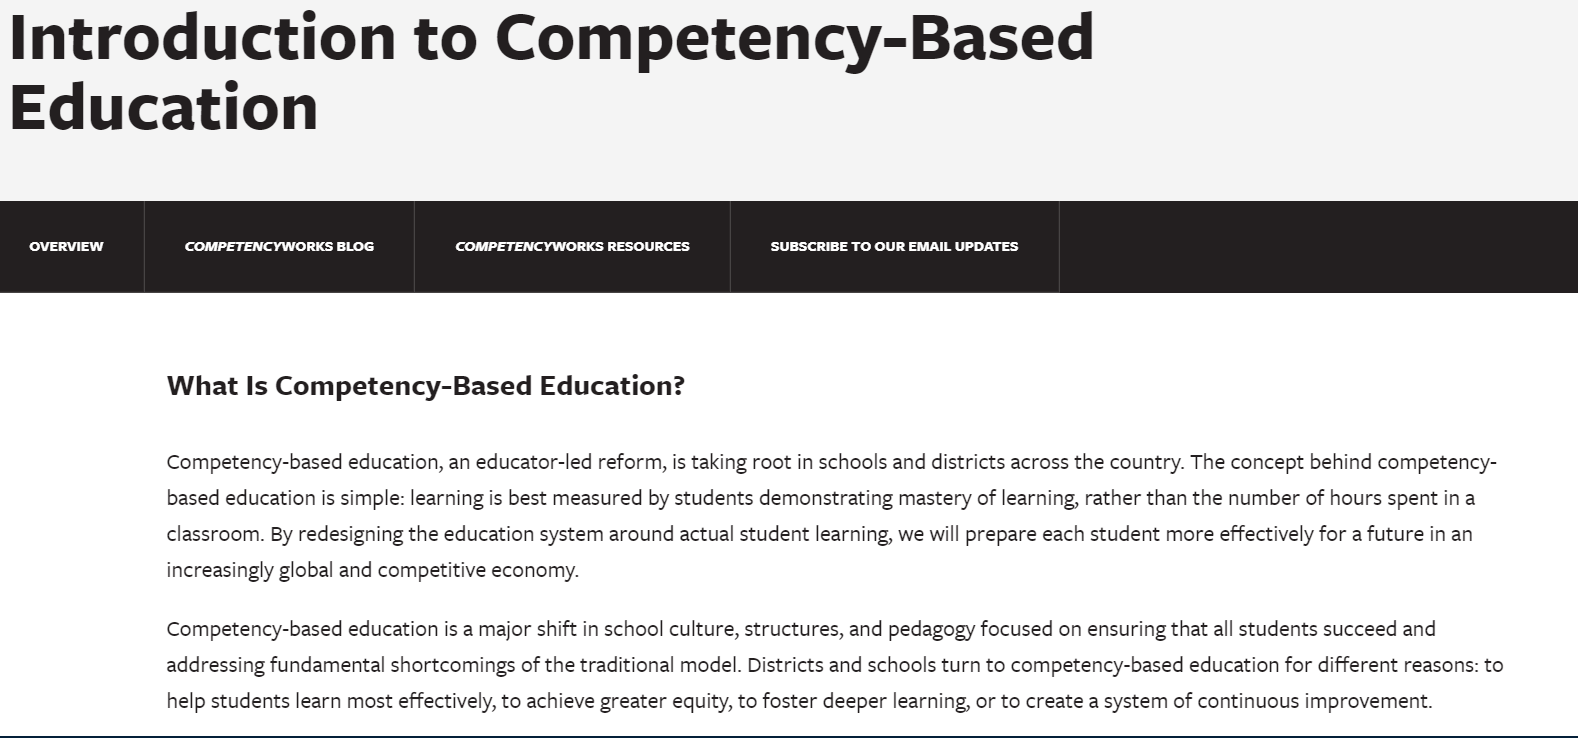 Introduction to Competency-Based Education